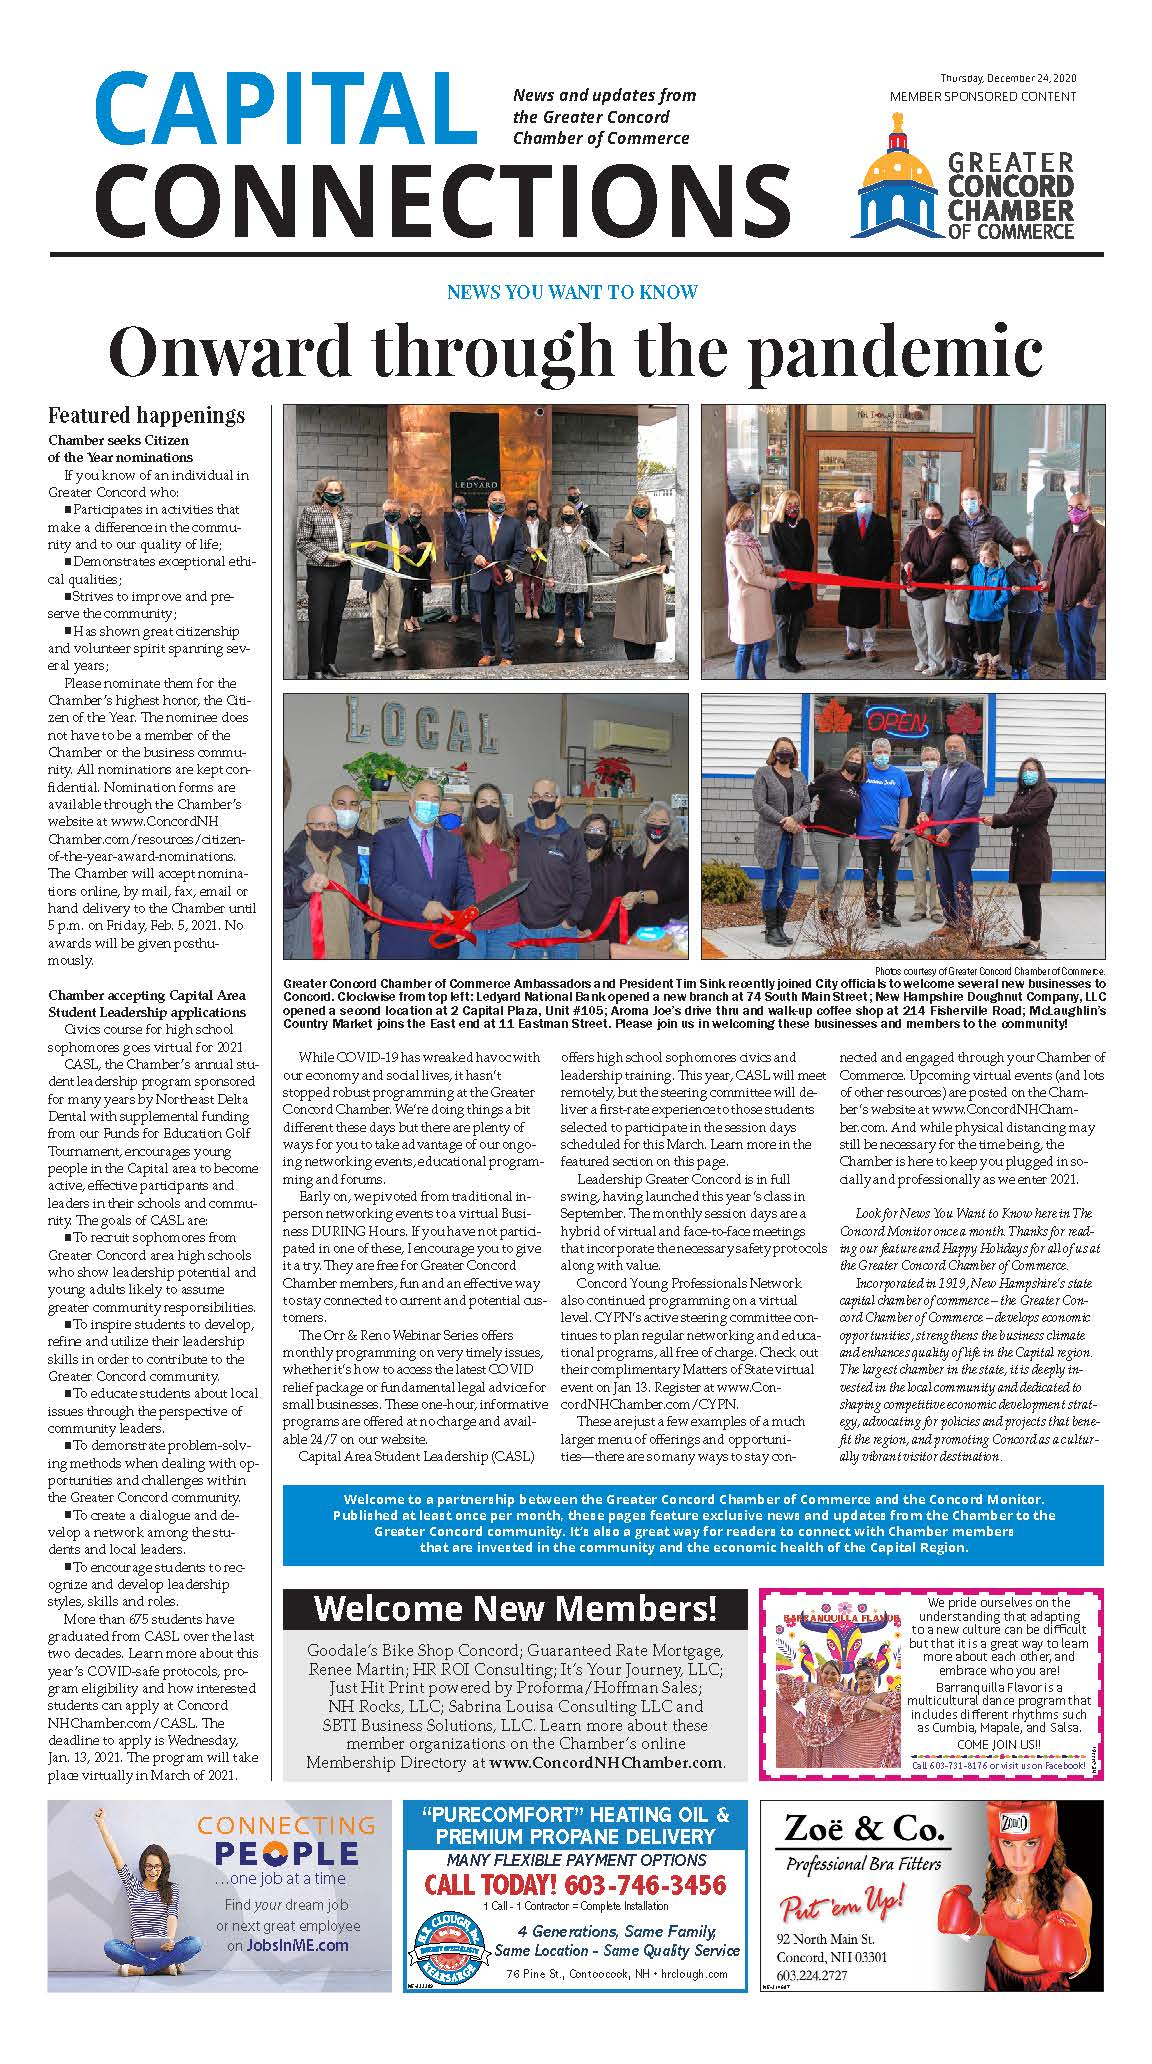 Link to a PDF of the Chamber's Onward through the pandemic article in the December 24, 2020 edition of the Concord Monitor